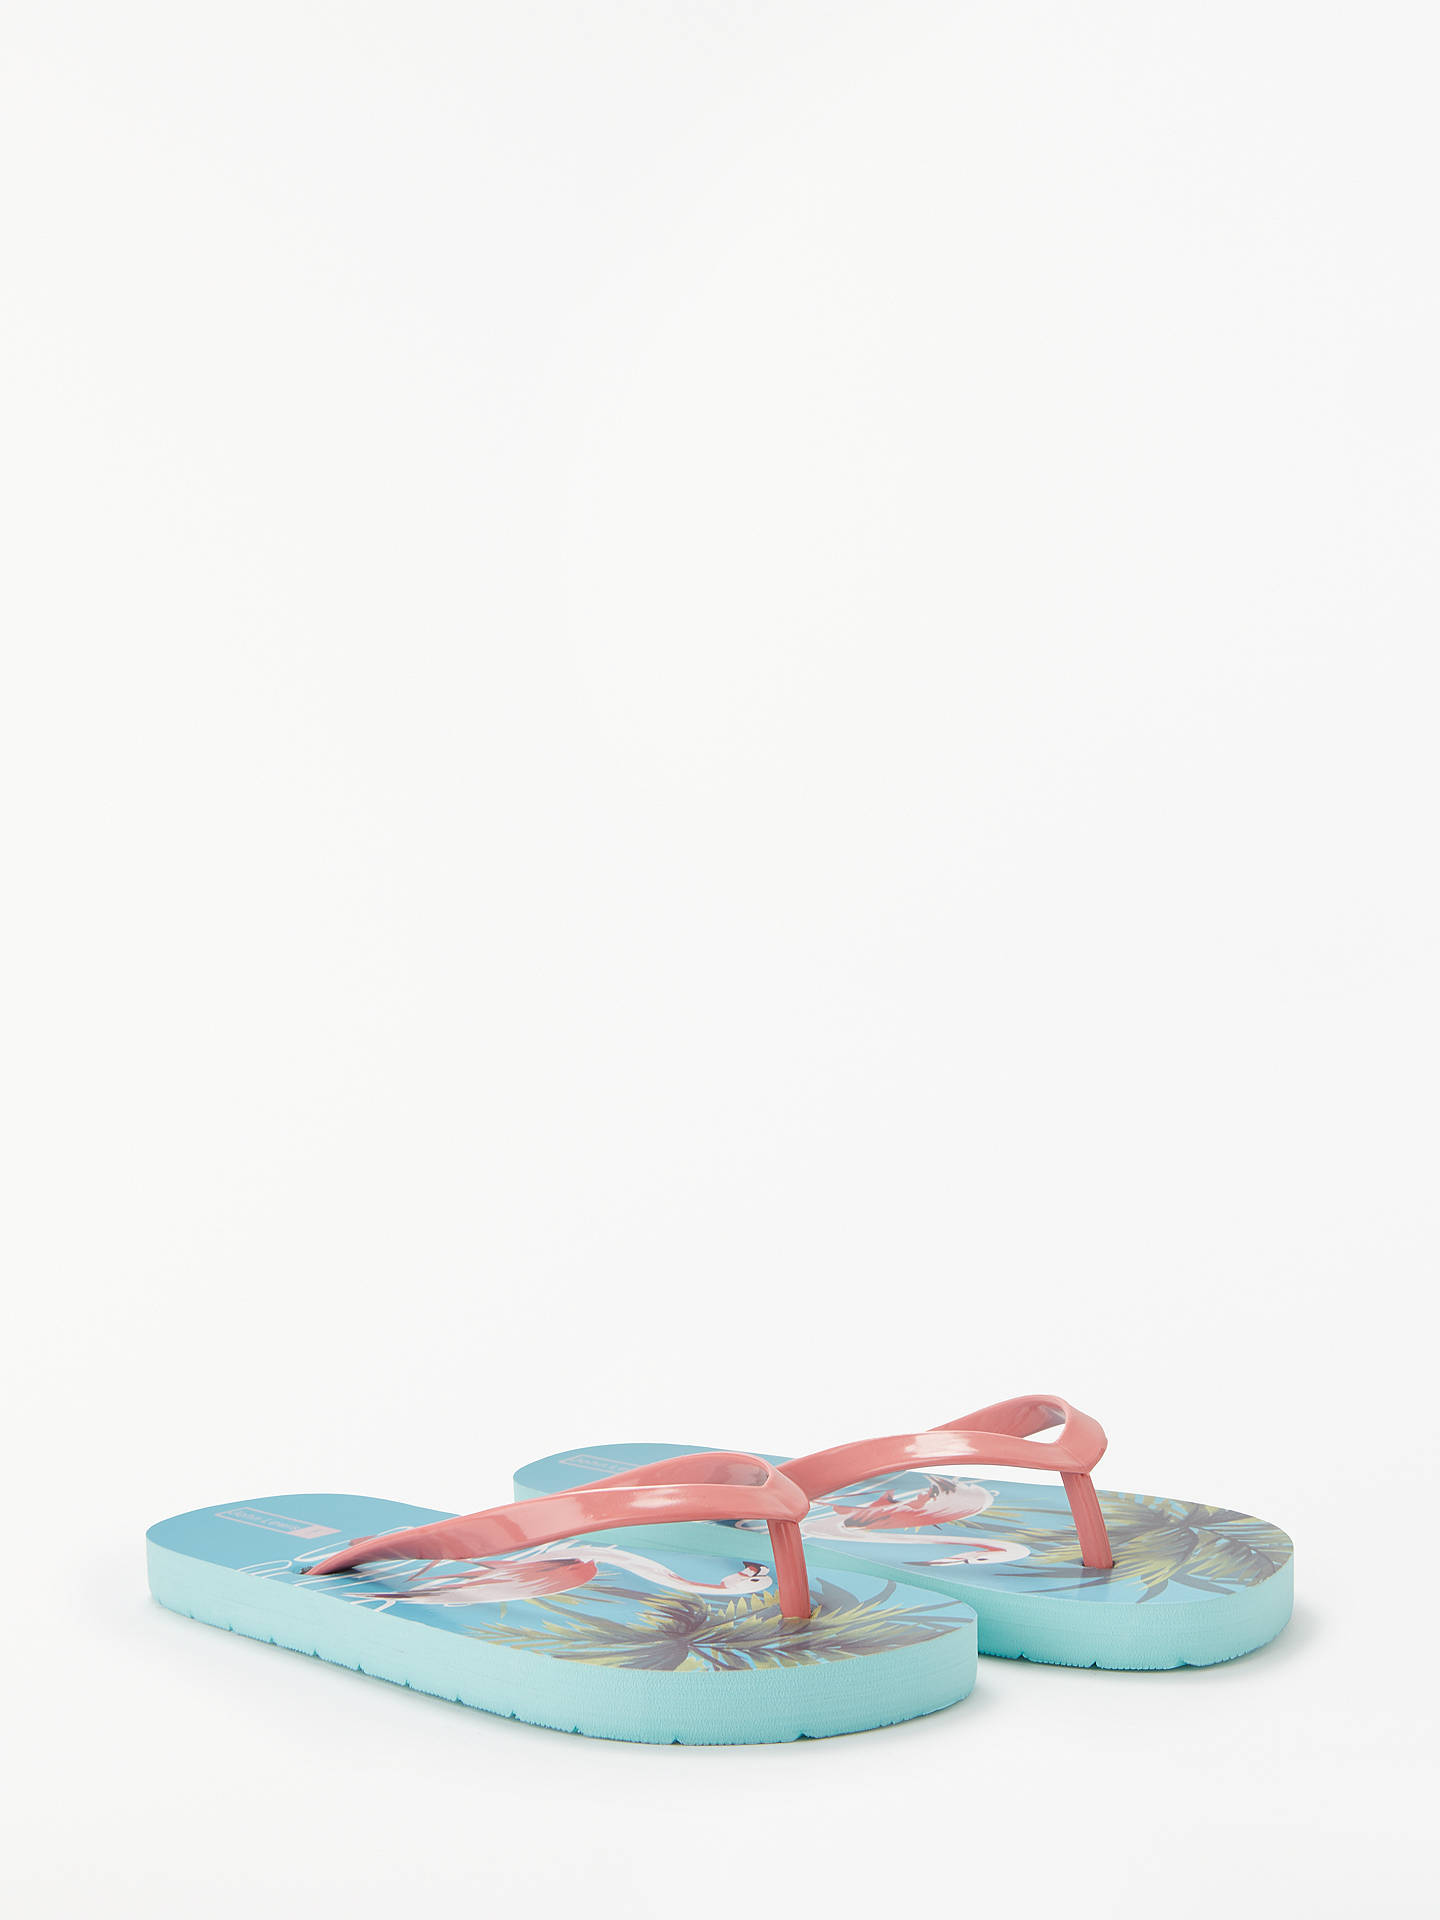 Buy John Lewis & Partners Children's Flamingo Flip Flops, Blue/Multi, 10 Jnr Online at johnlewis.com